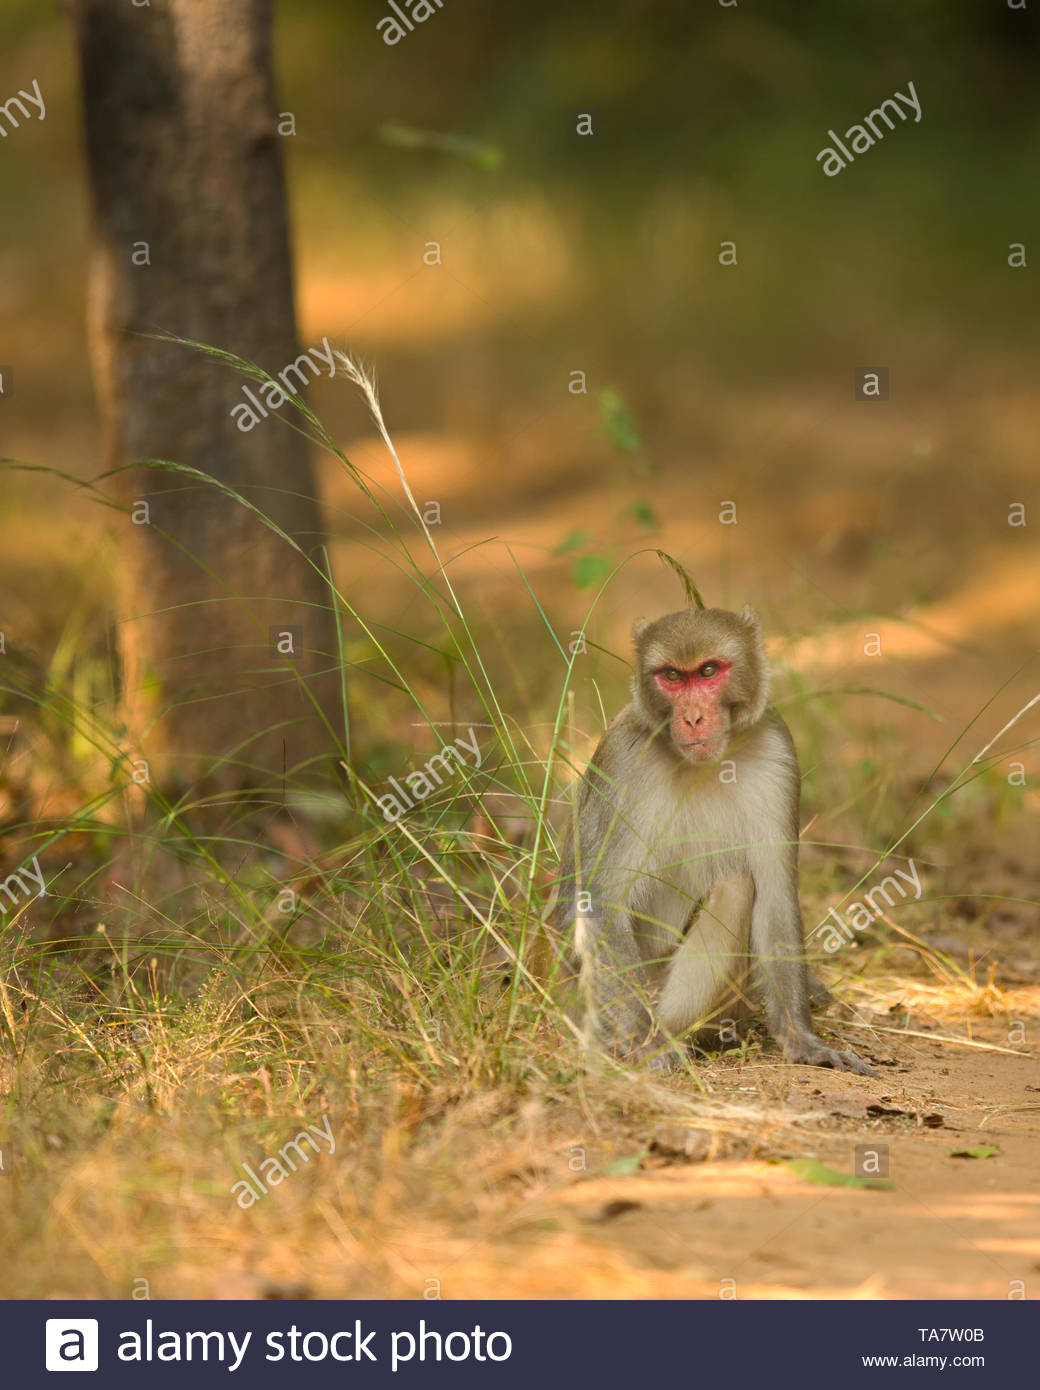 angry look of macaque ... The rhesus macaque is one of the best-known species of Old World monkeys. - Stock Image